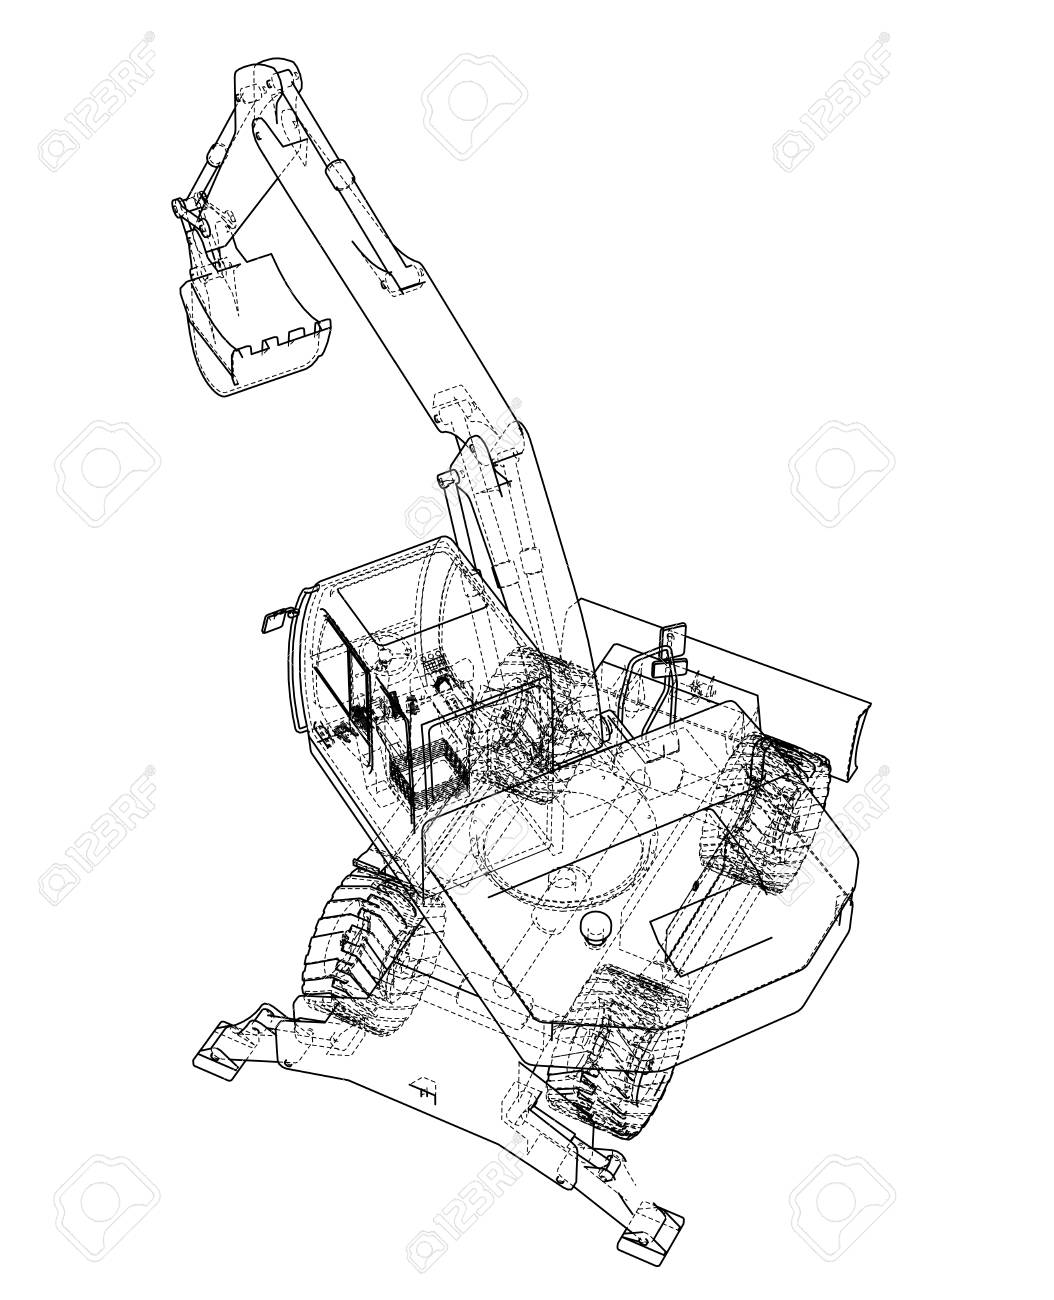 Outline Of Excavator Isolated On Background Stock Photo